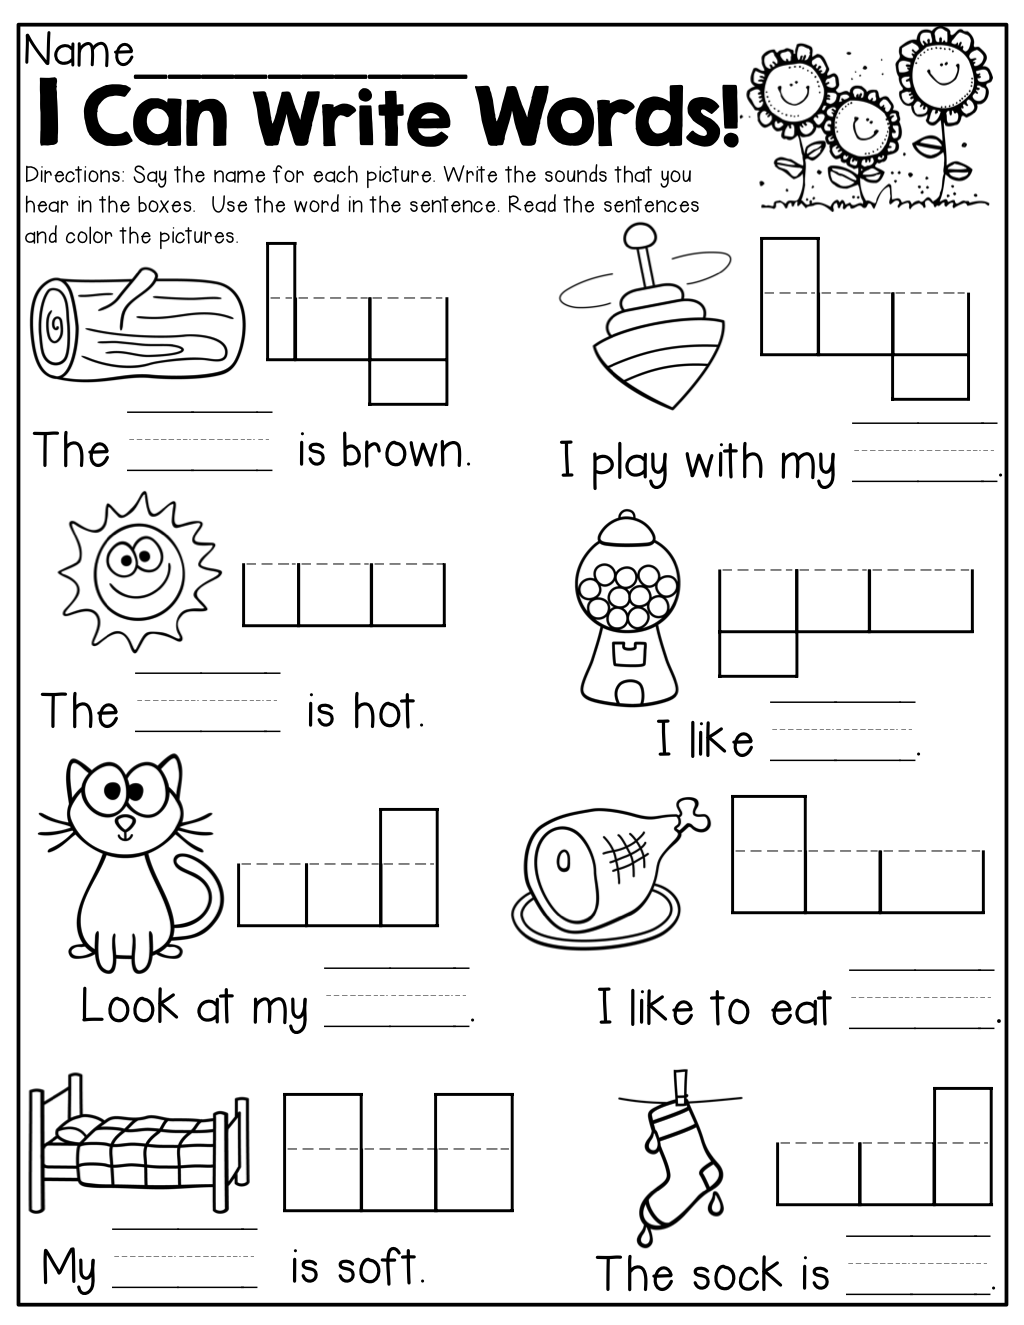 Kindergarten I Can Write Words! Read And Write Simple Words With